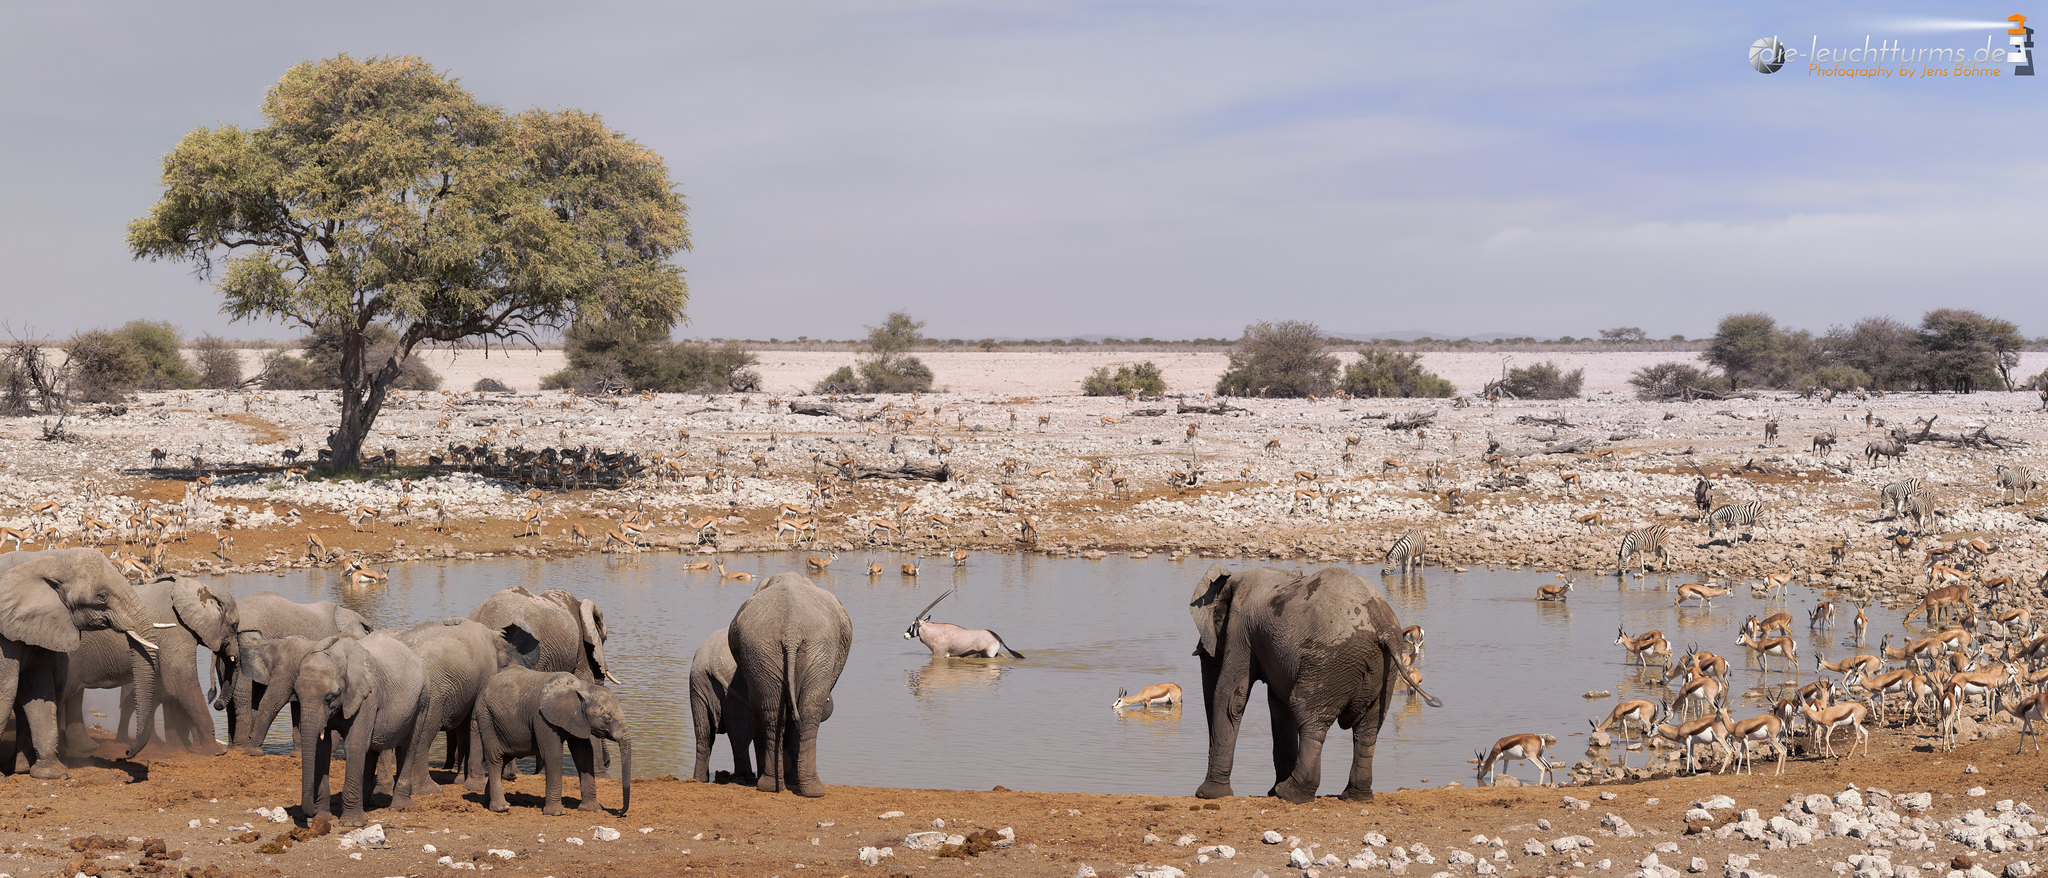 Late afternoon at the waterhole